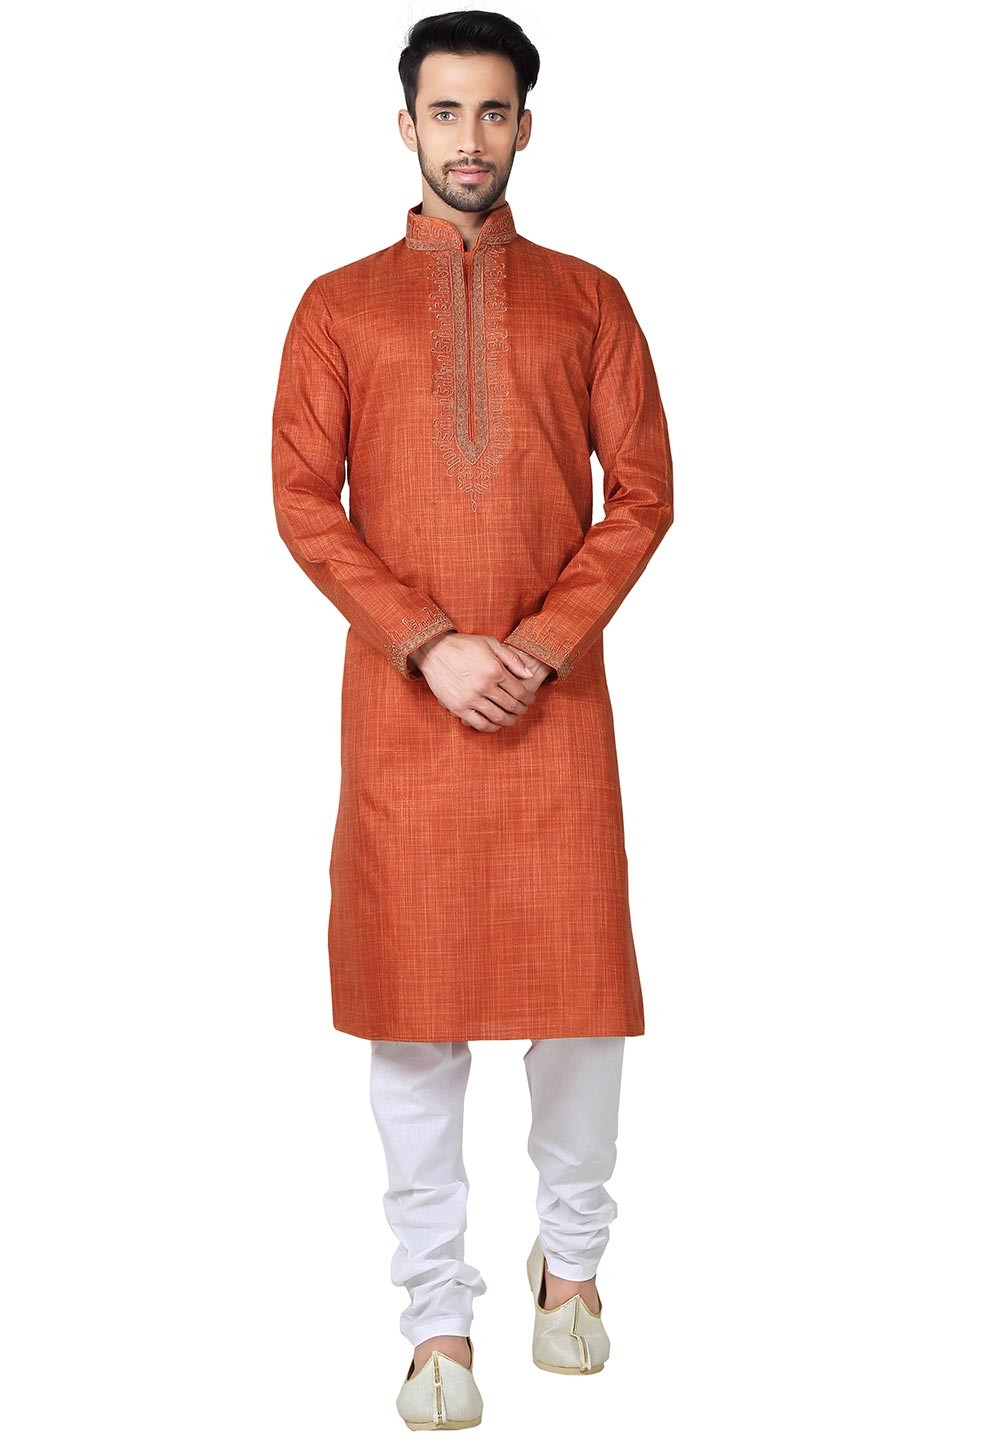 Red Color Cotton,Linen Fabric Readymade Kurta Pyjama With Embroidery Work.